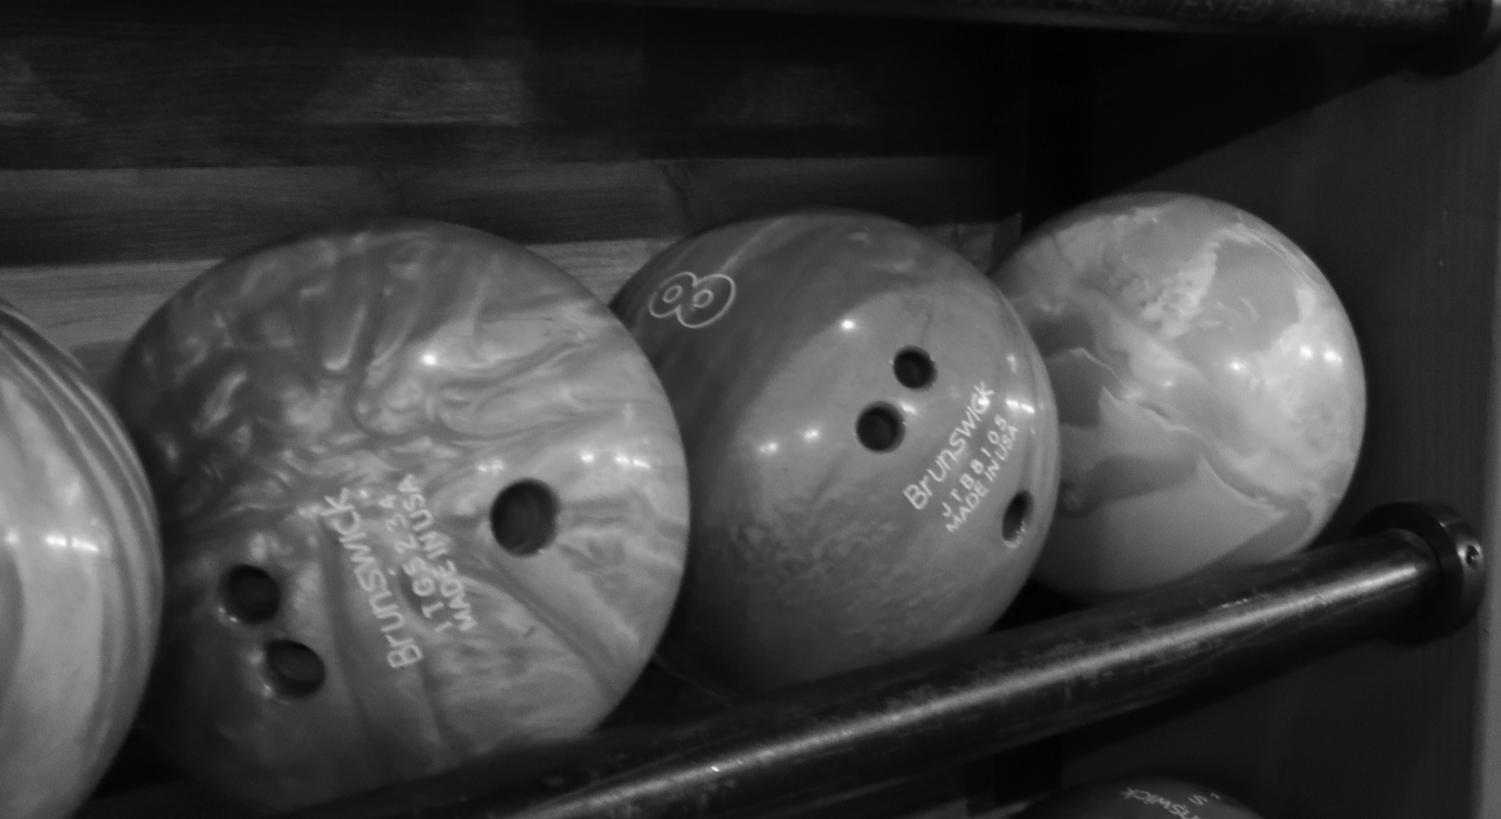 Bowling+balls+sit+restlessly+on+the+shelf+awaiting+their+turn+to+roll+down+the+lane.